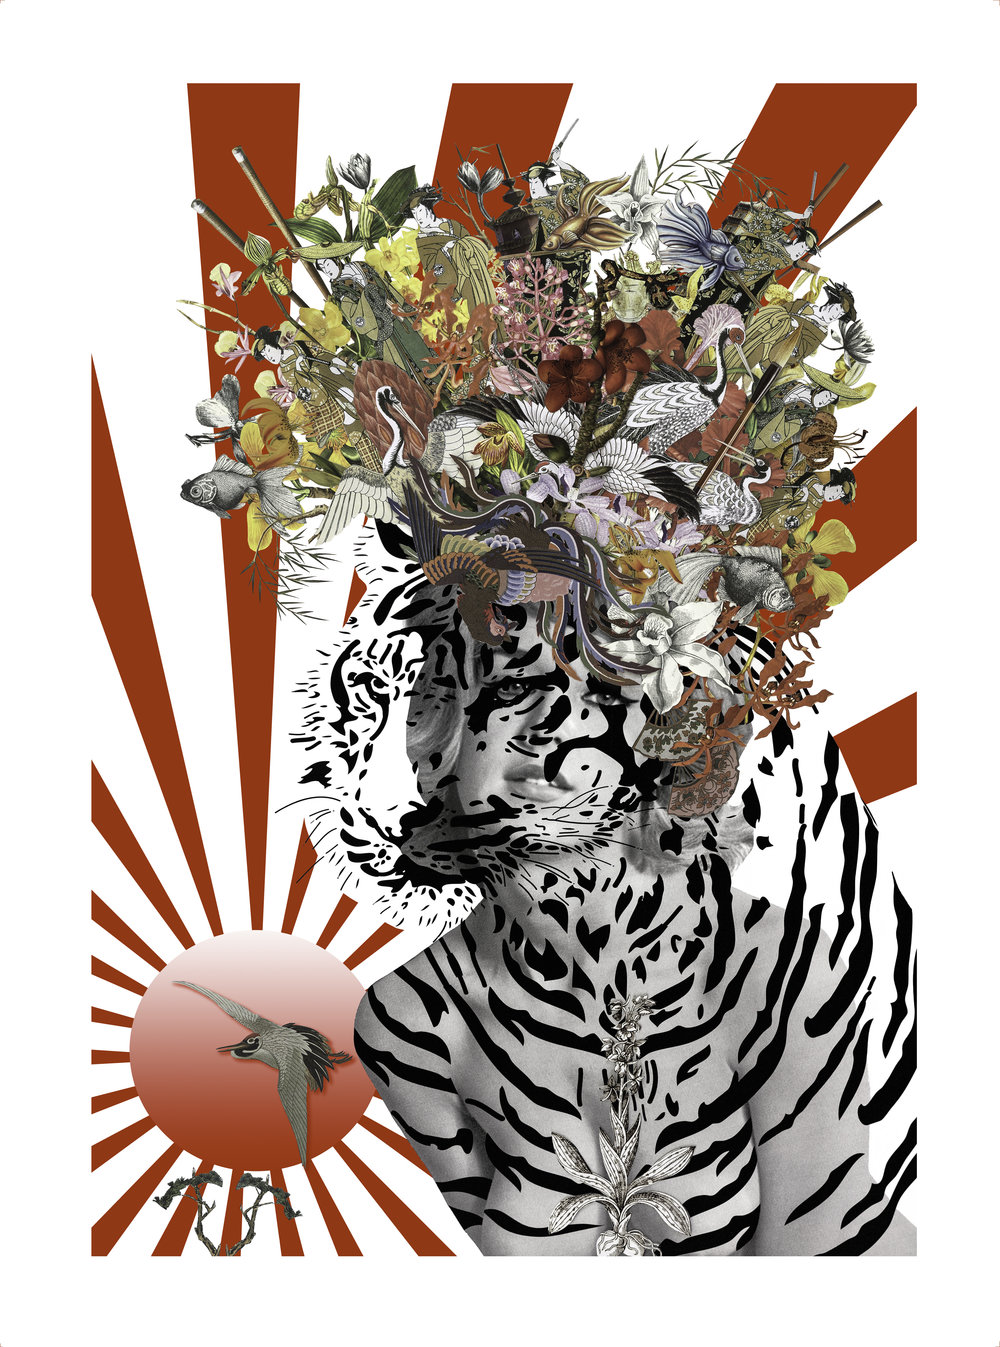 ANIMAL ATTRACTION: SUKI LIMITED EDITION PRINT of 25 WITH HAND GOLD LEAFING SOMERSET PAPER WITH HAND TORN EDGES A1 SIZE